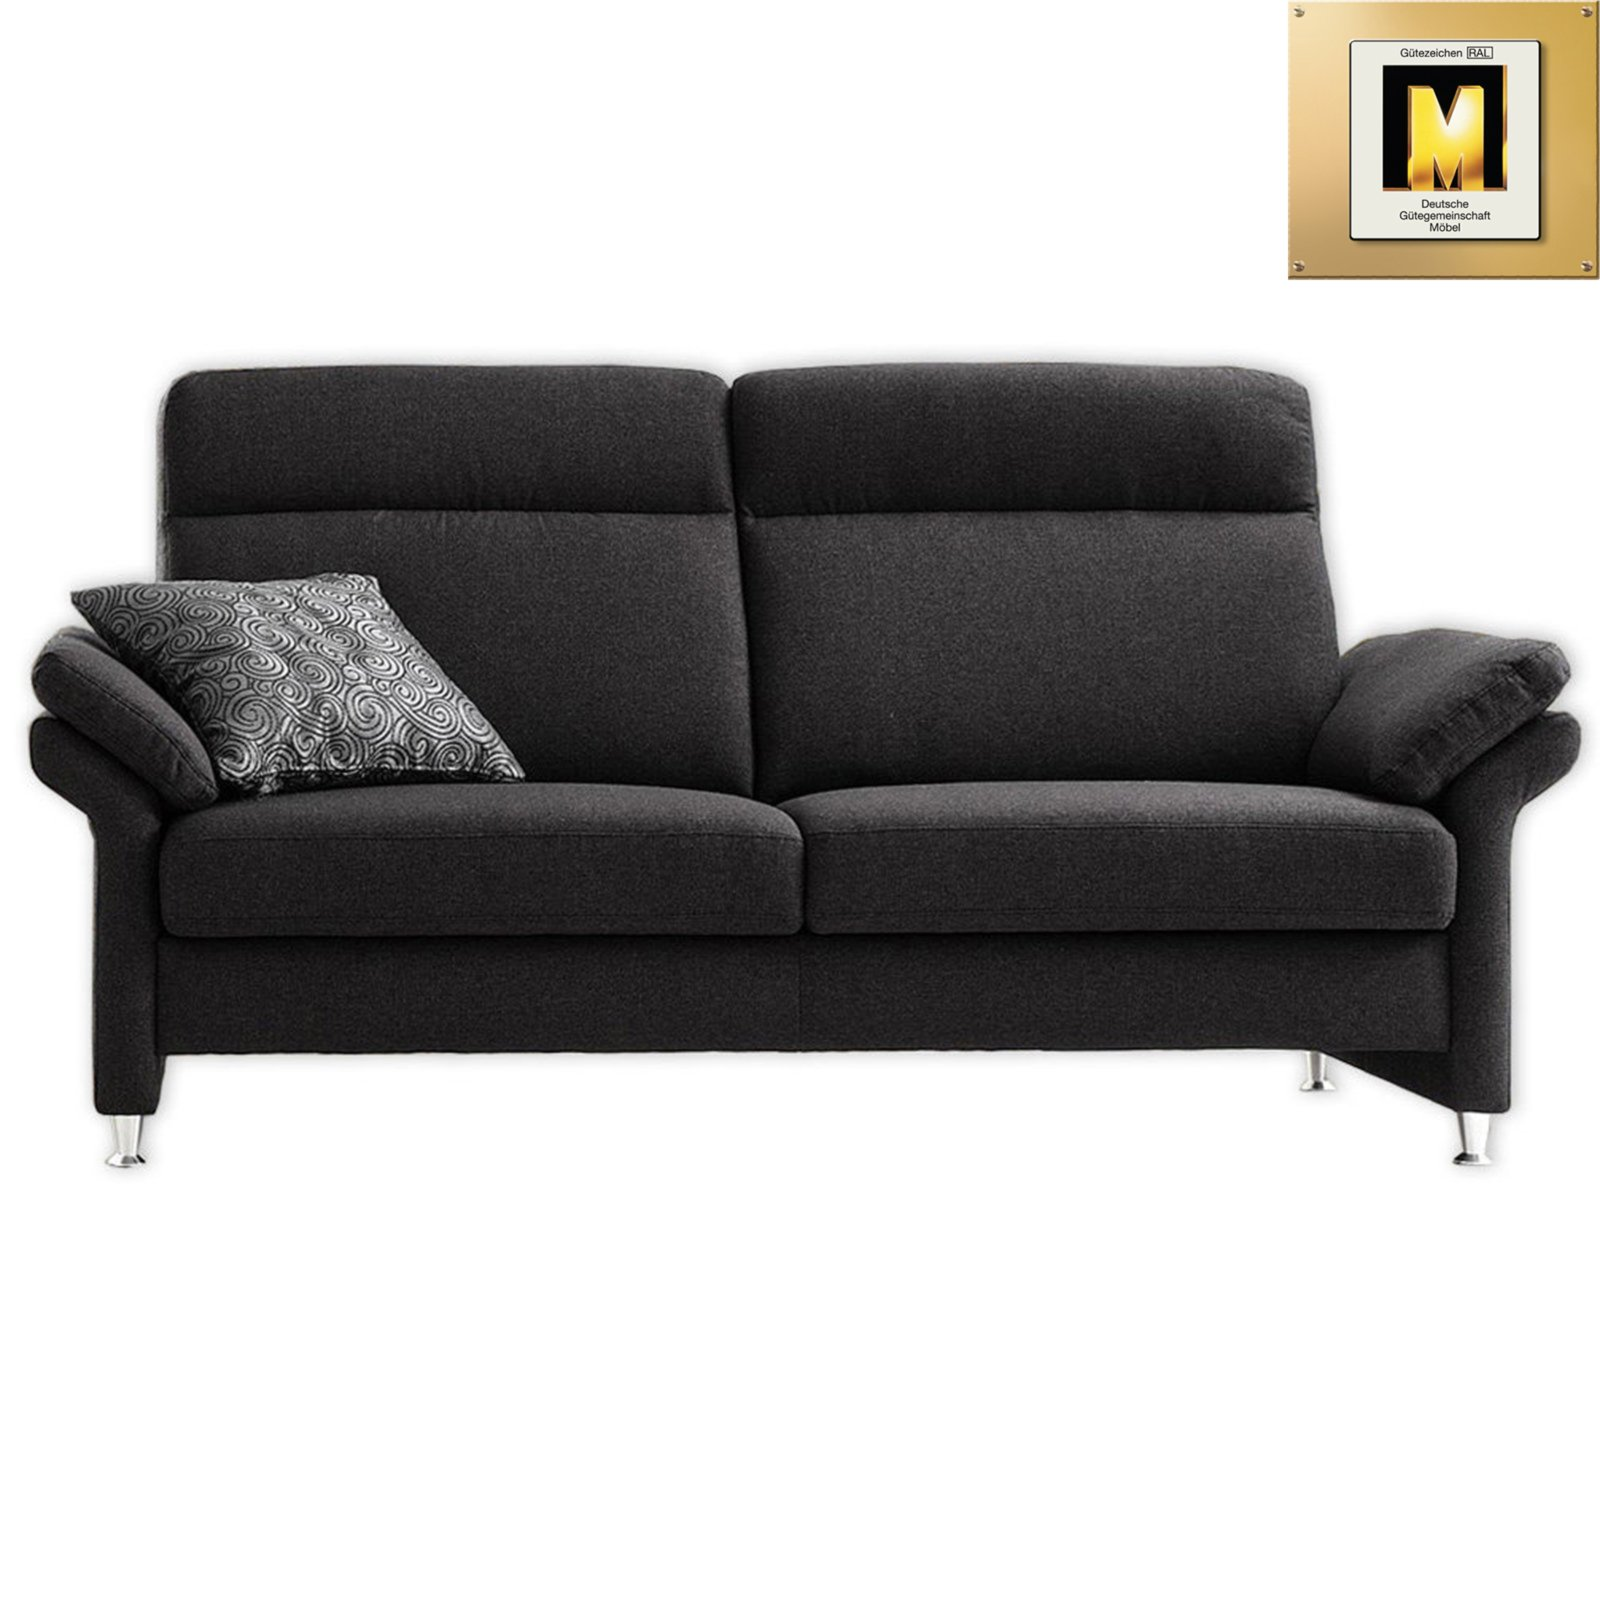 3 sitzer sofa anthrazit mit federkern einzelsofas 2er 3er 4er sofas couches. Black Bedroom Furniture Sets. Home Design Ideas